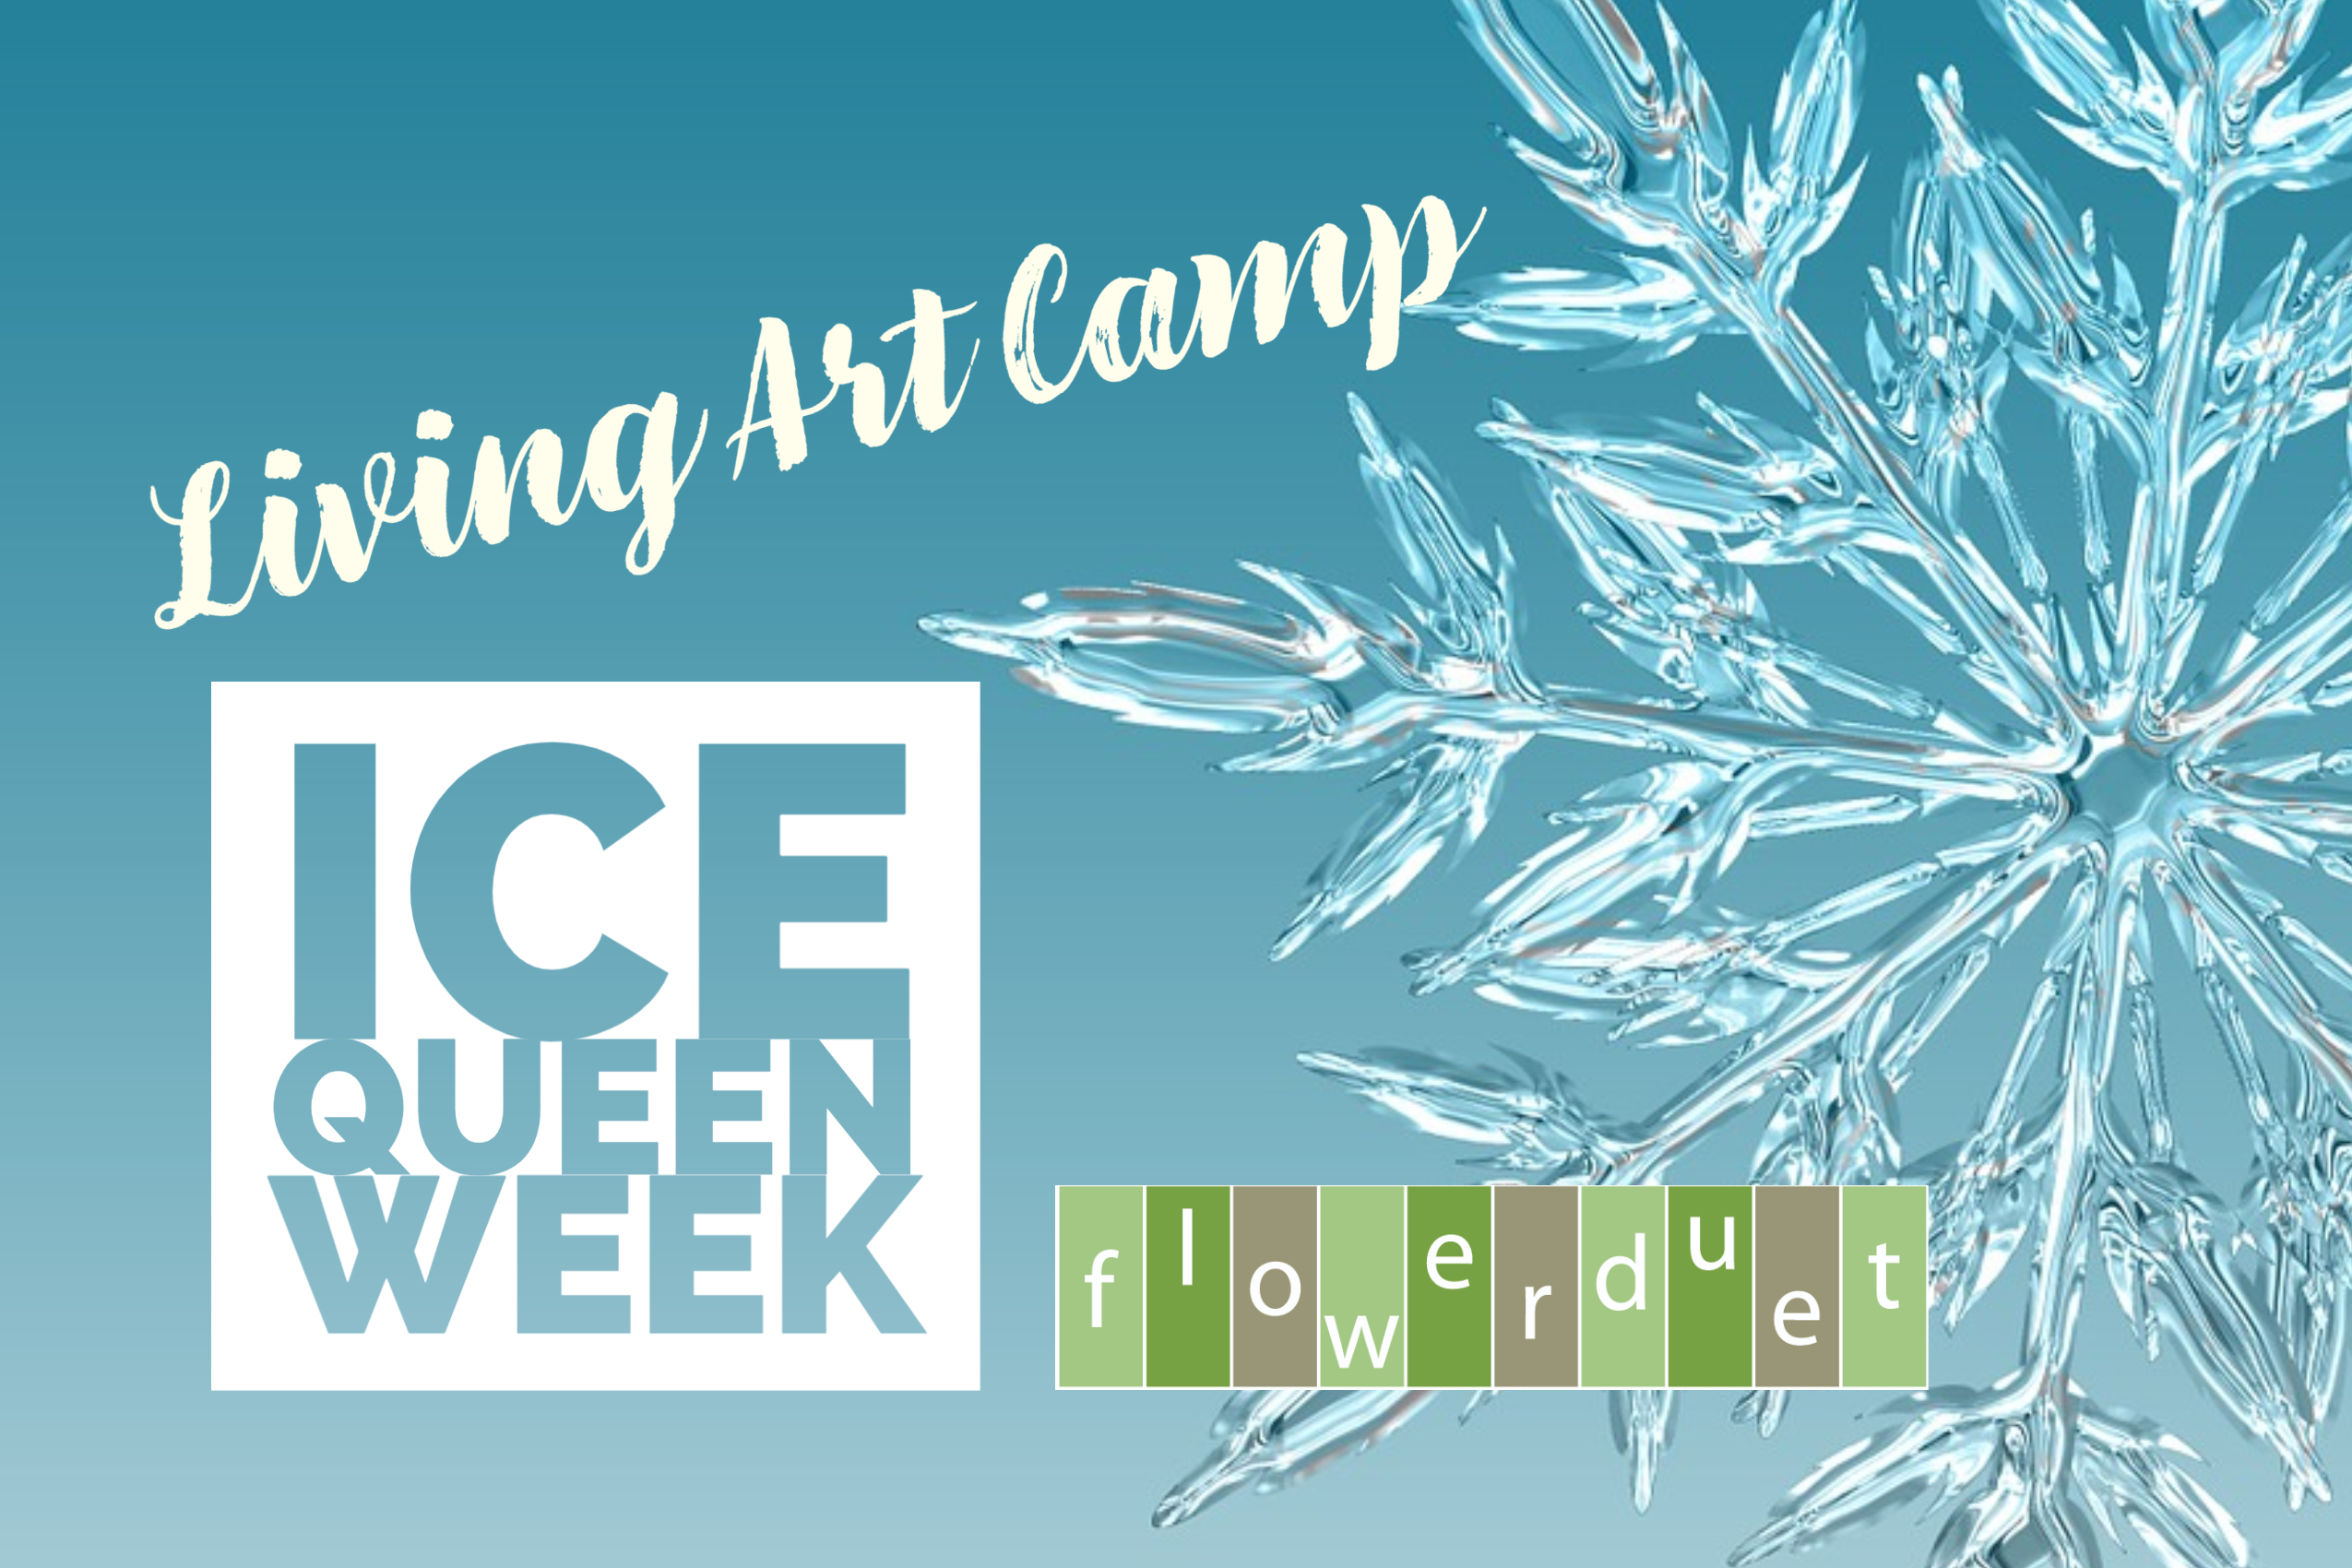 Ice Queen Week Camp